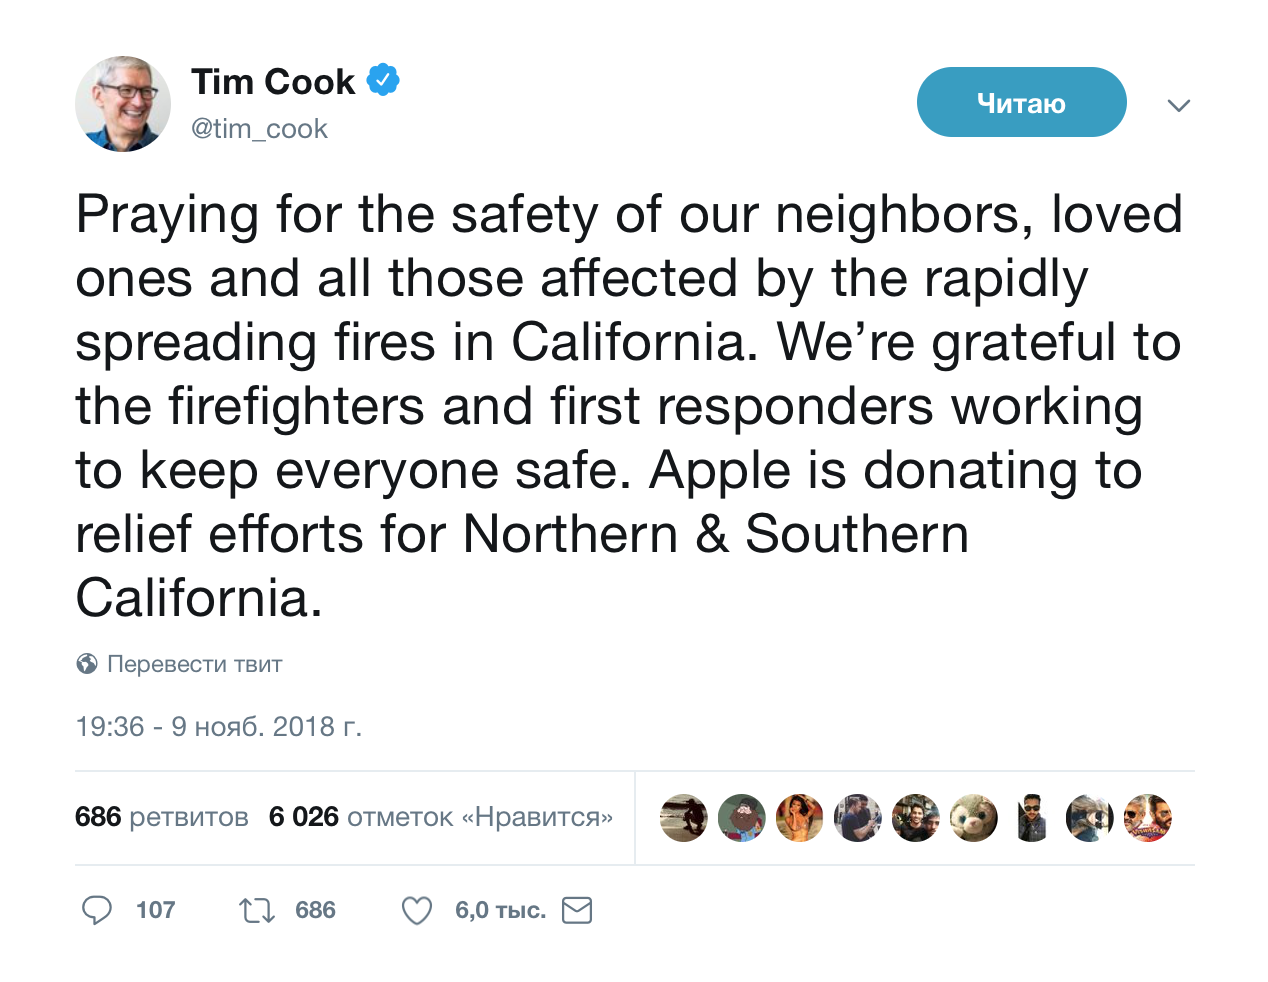 Tim cook promised to donate money to fight the fires in California